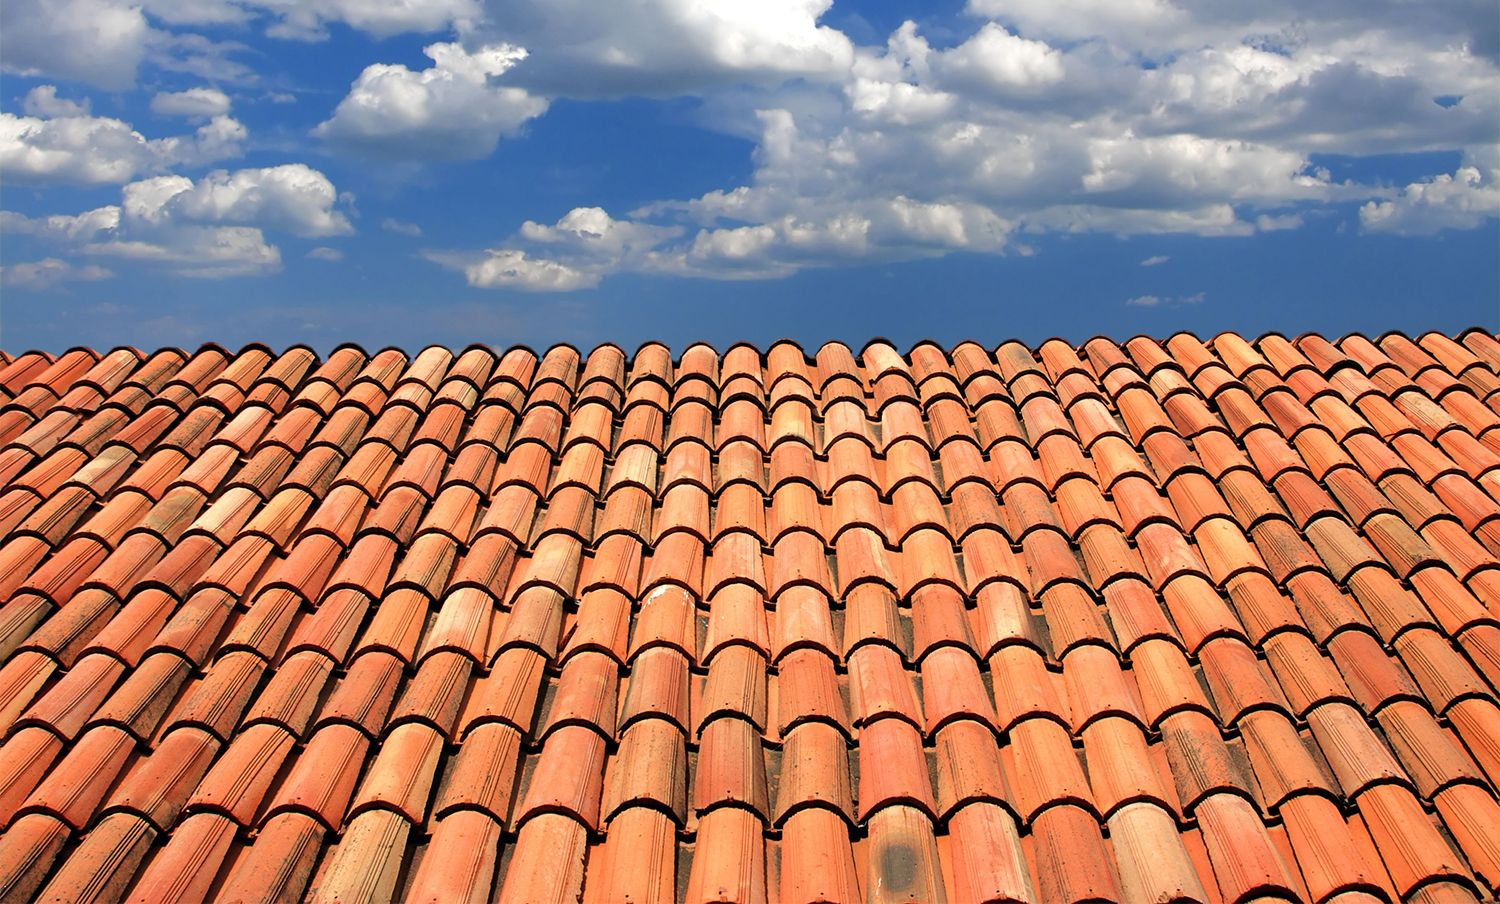 We Are Experts In Detecting Leaks And Can Provide A Free Roof Assessment Or On The Spot Repair To Solve Your Tile Repair Restoration Services Repair